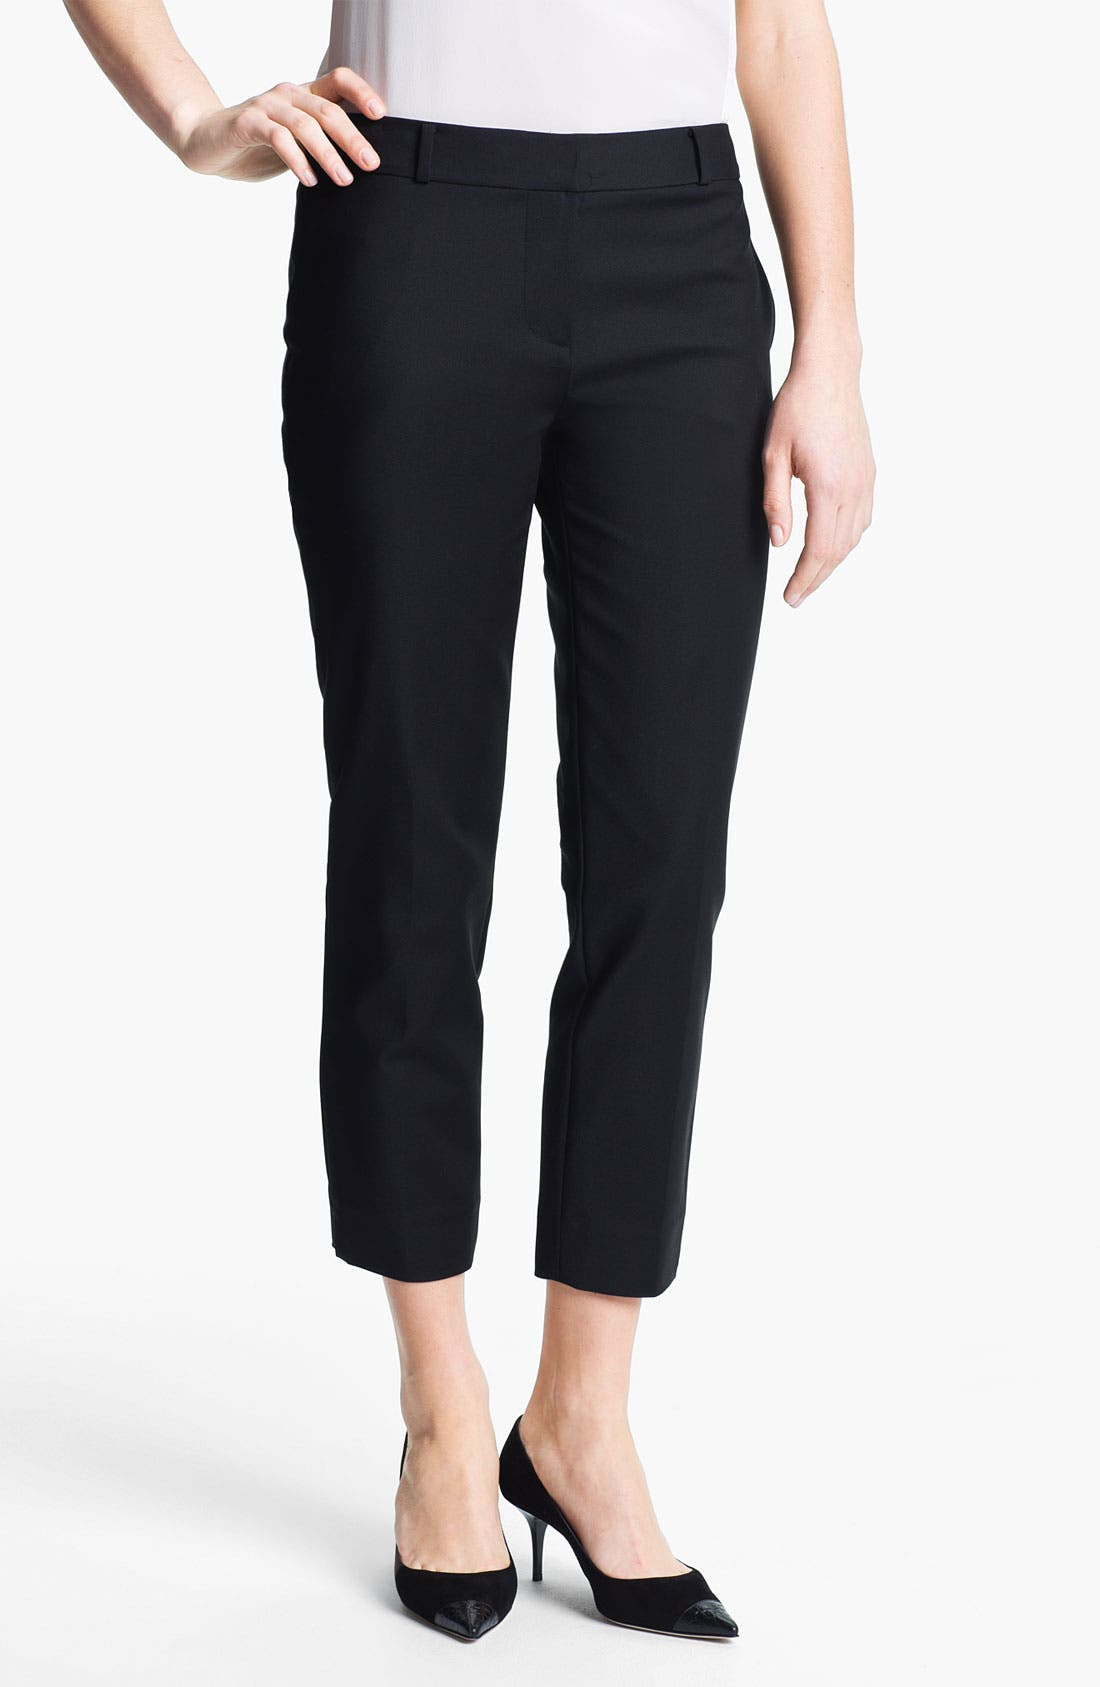 Alternate Image 1 Selected - kate spade new york 'davis' capri pants